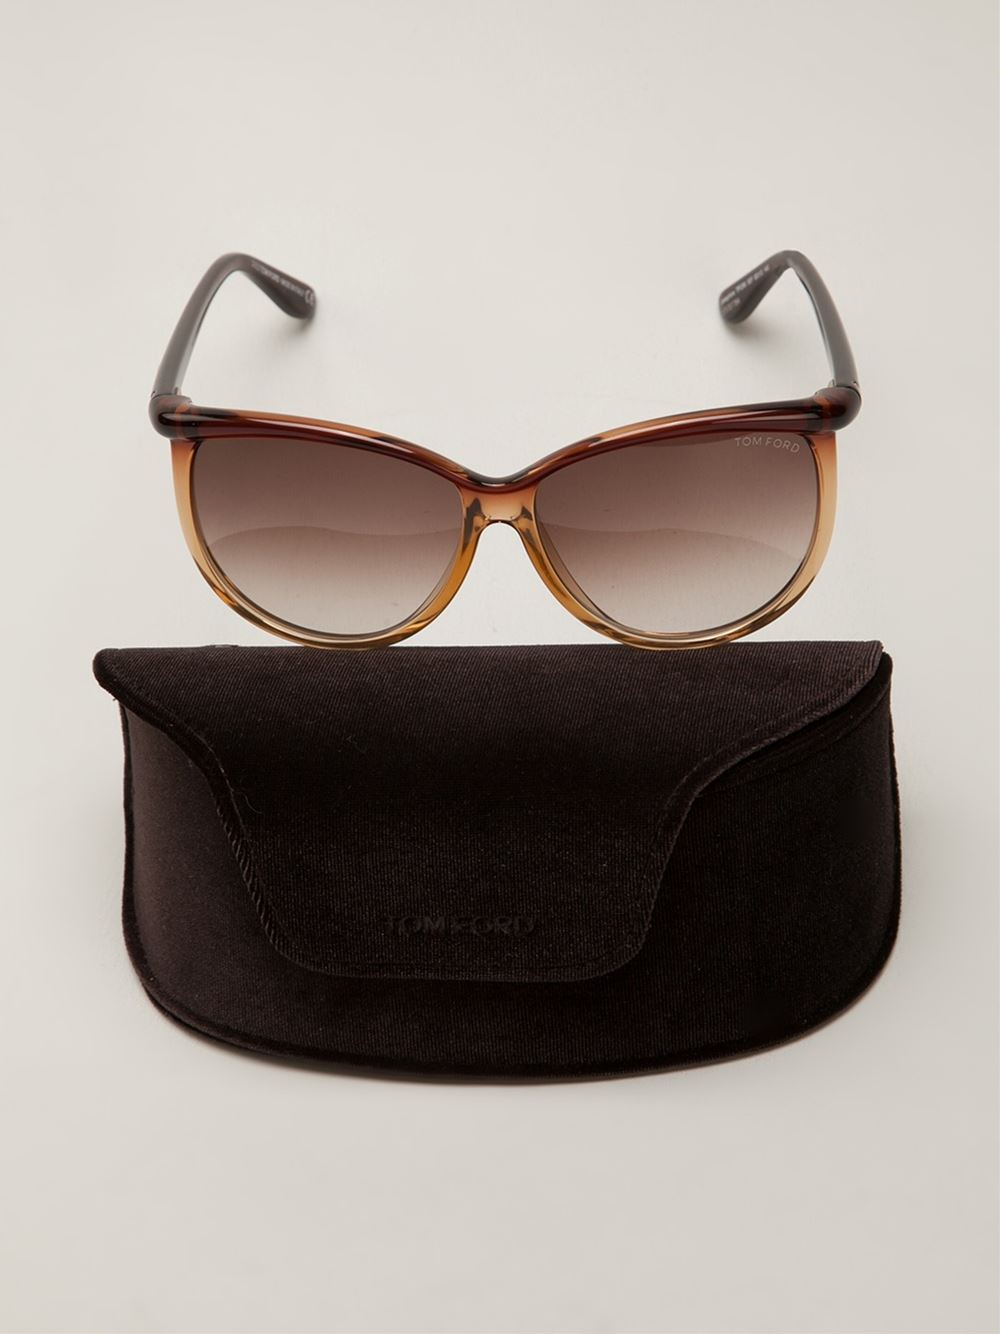 Tom Ford Josephine Sunglasses in Brown